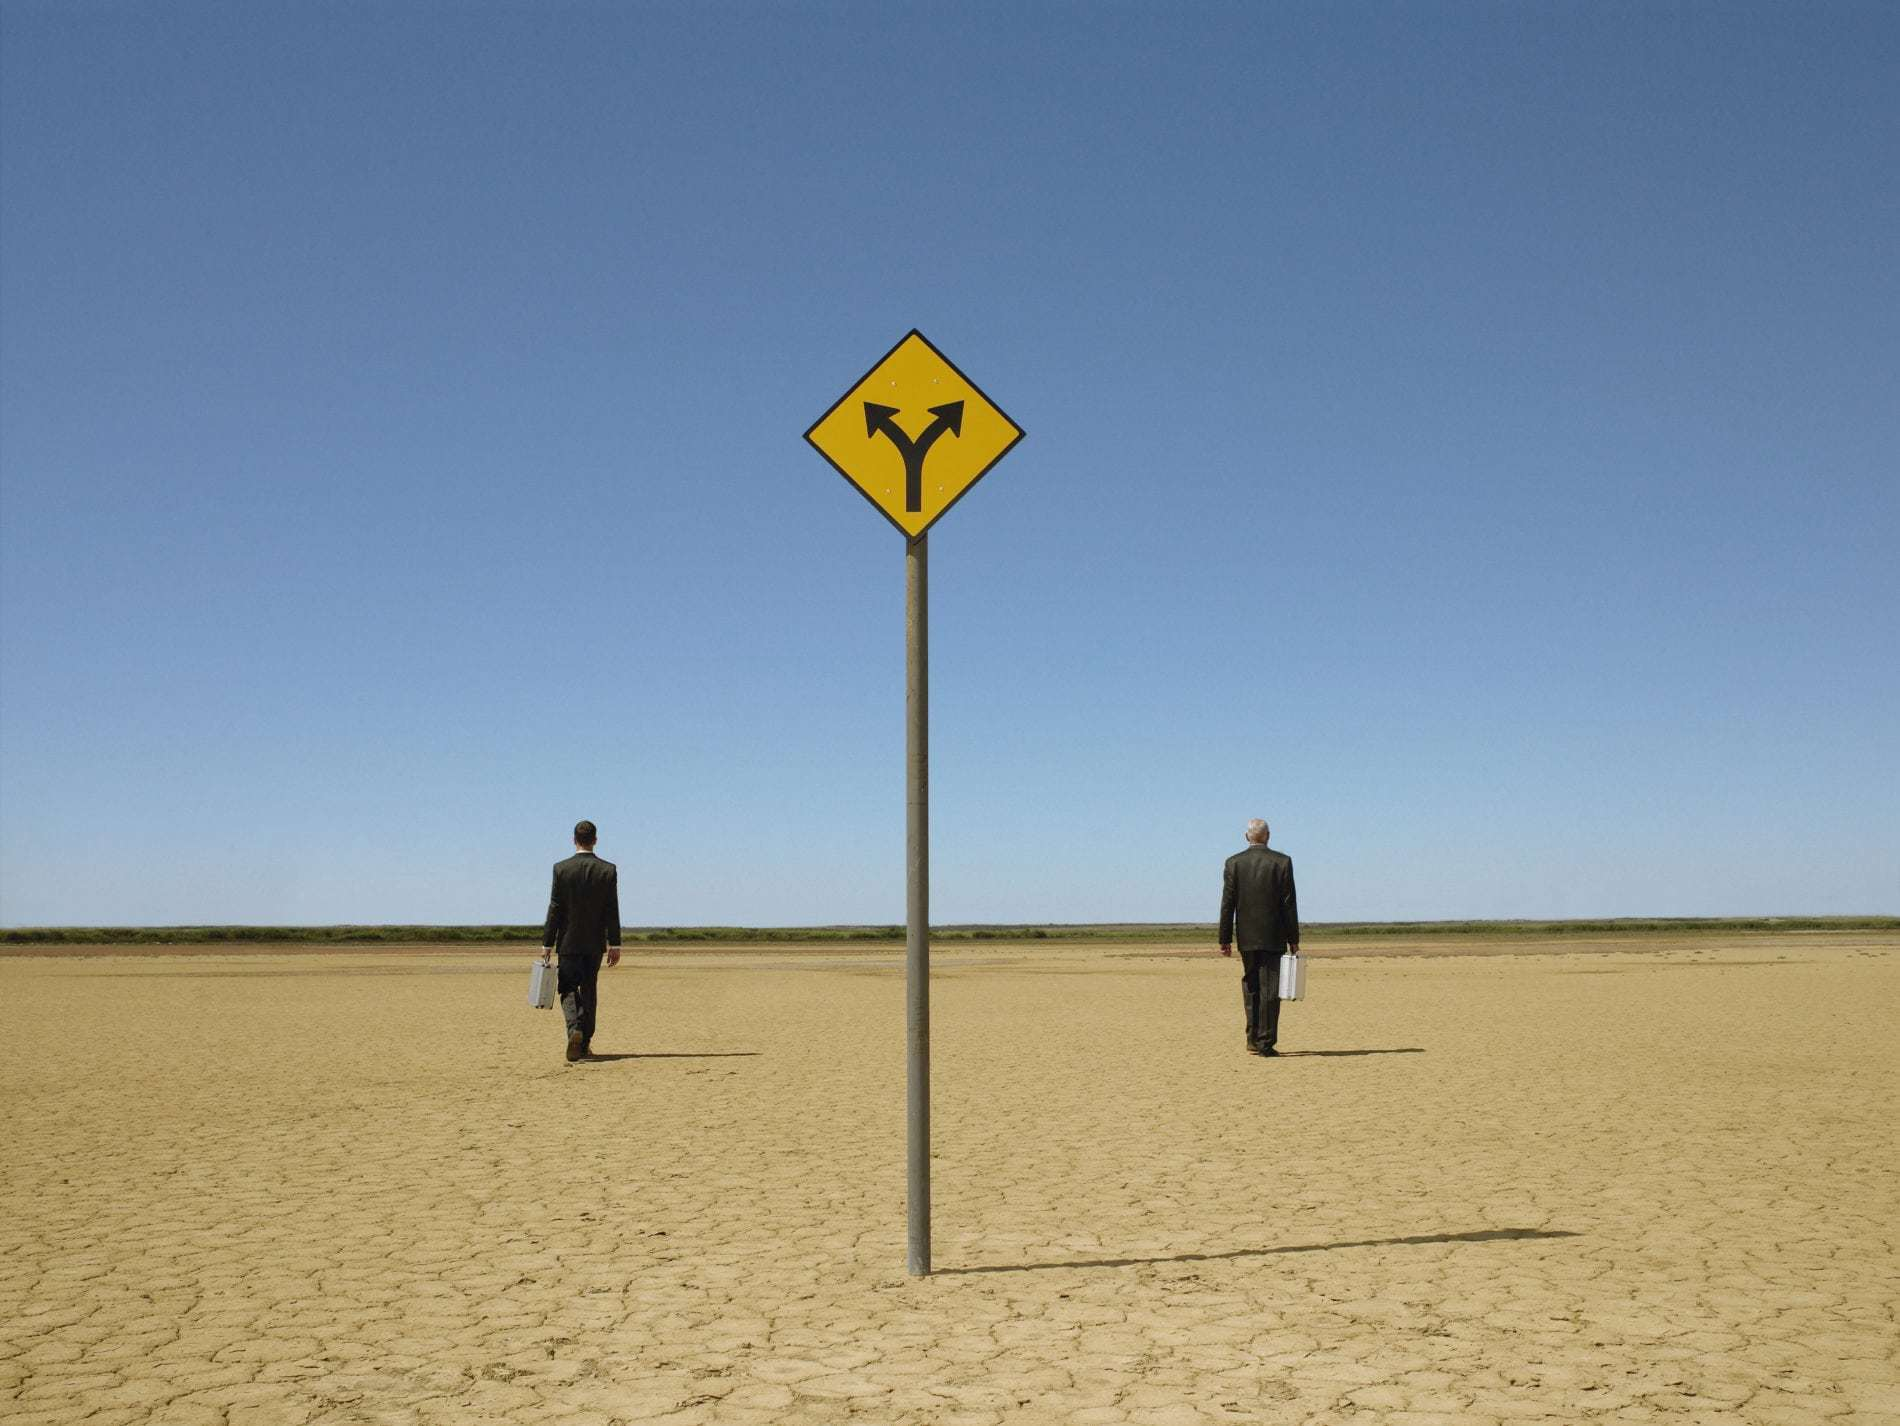 man with suitcase - crossroad sign image